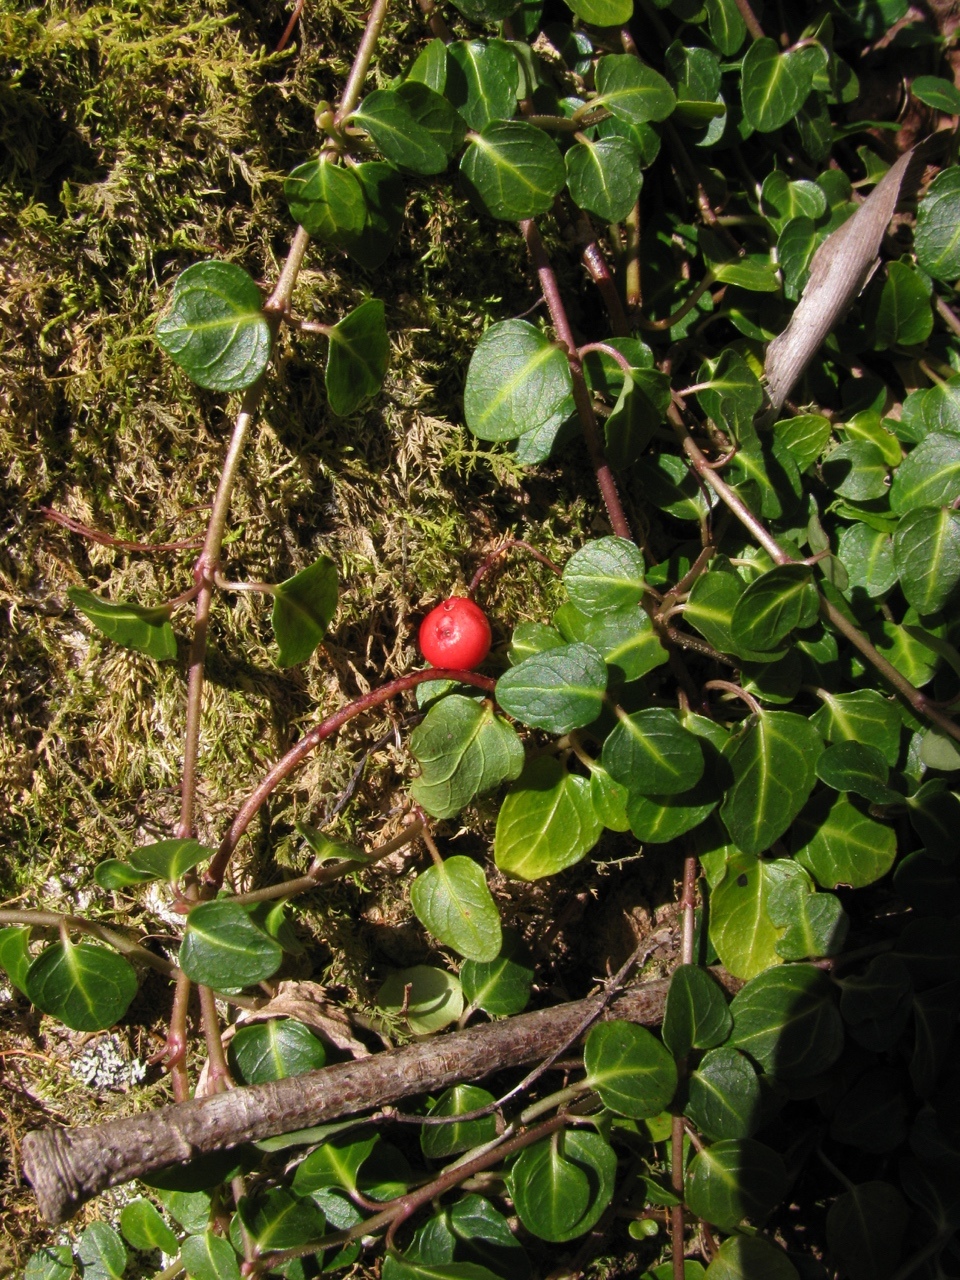 The Scientific Name is Mitchella repens. You will likely hear them called Partridge-berry, Twinberry, Running Box, Pigeon Plum. This picture shows the Plant with creeping stems and dark green, leathery, evergreen opposite leaves of Mitchella repens